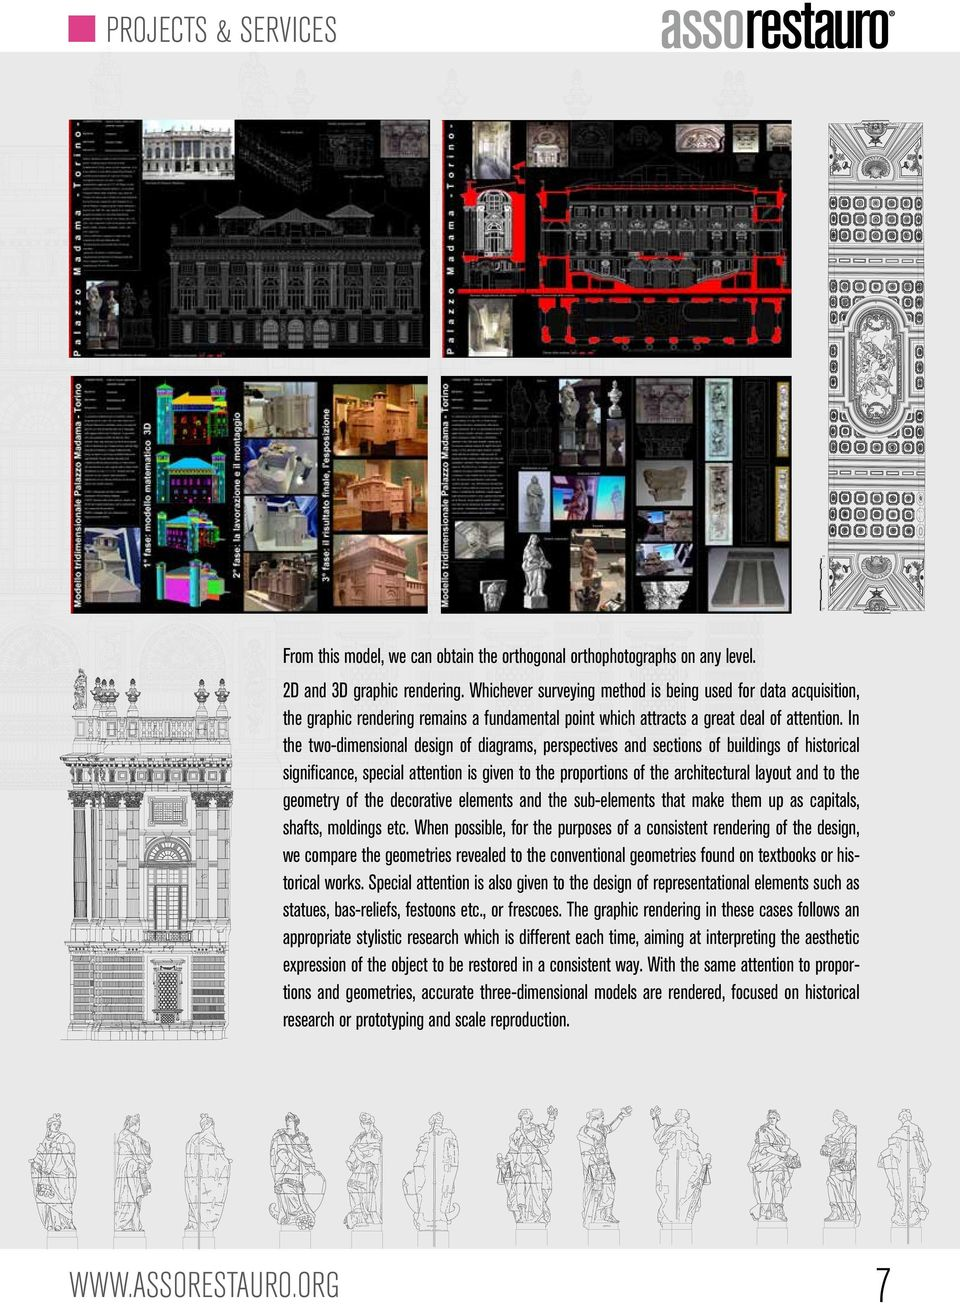 In the two-dimensional design of diagrams, perspectives and sections of buildings of historical significance, special attention is given to the proportions of the architectural layout and to the